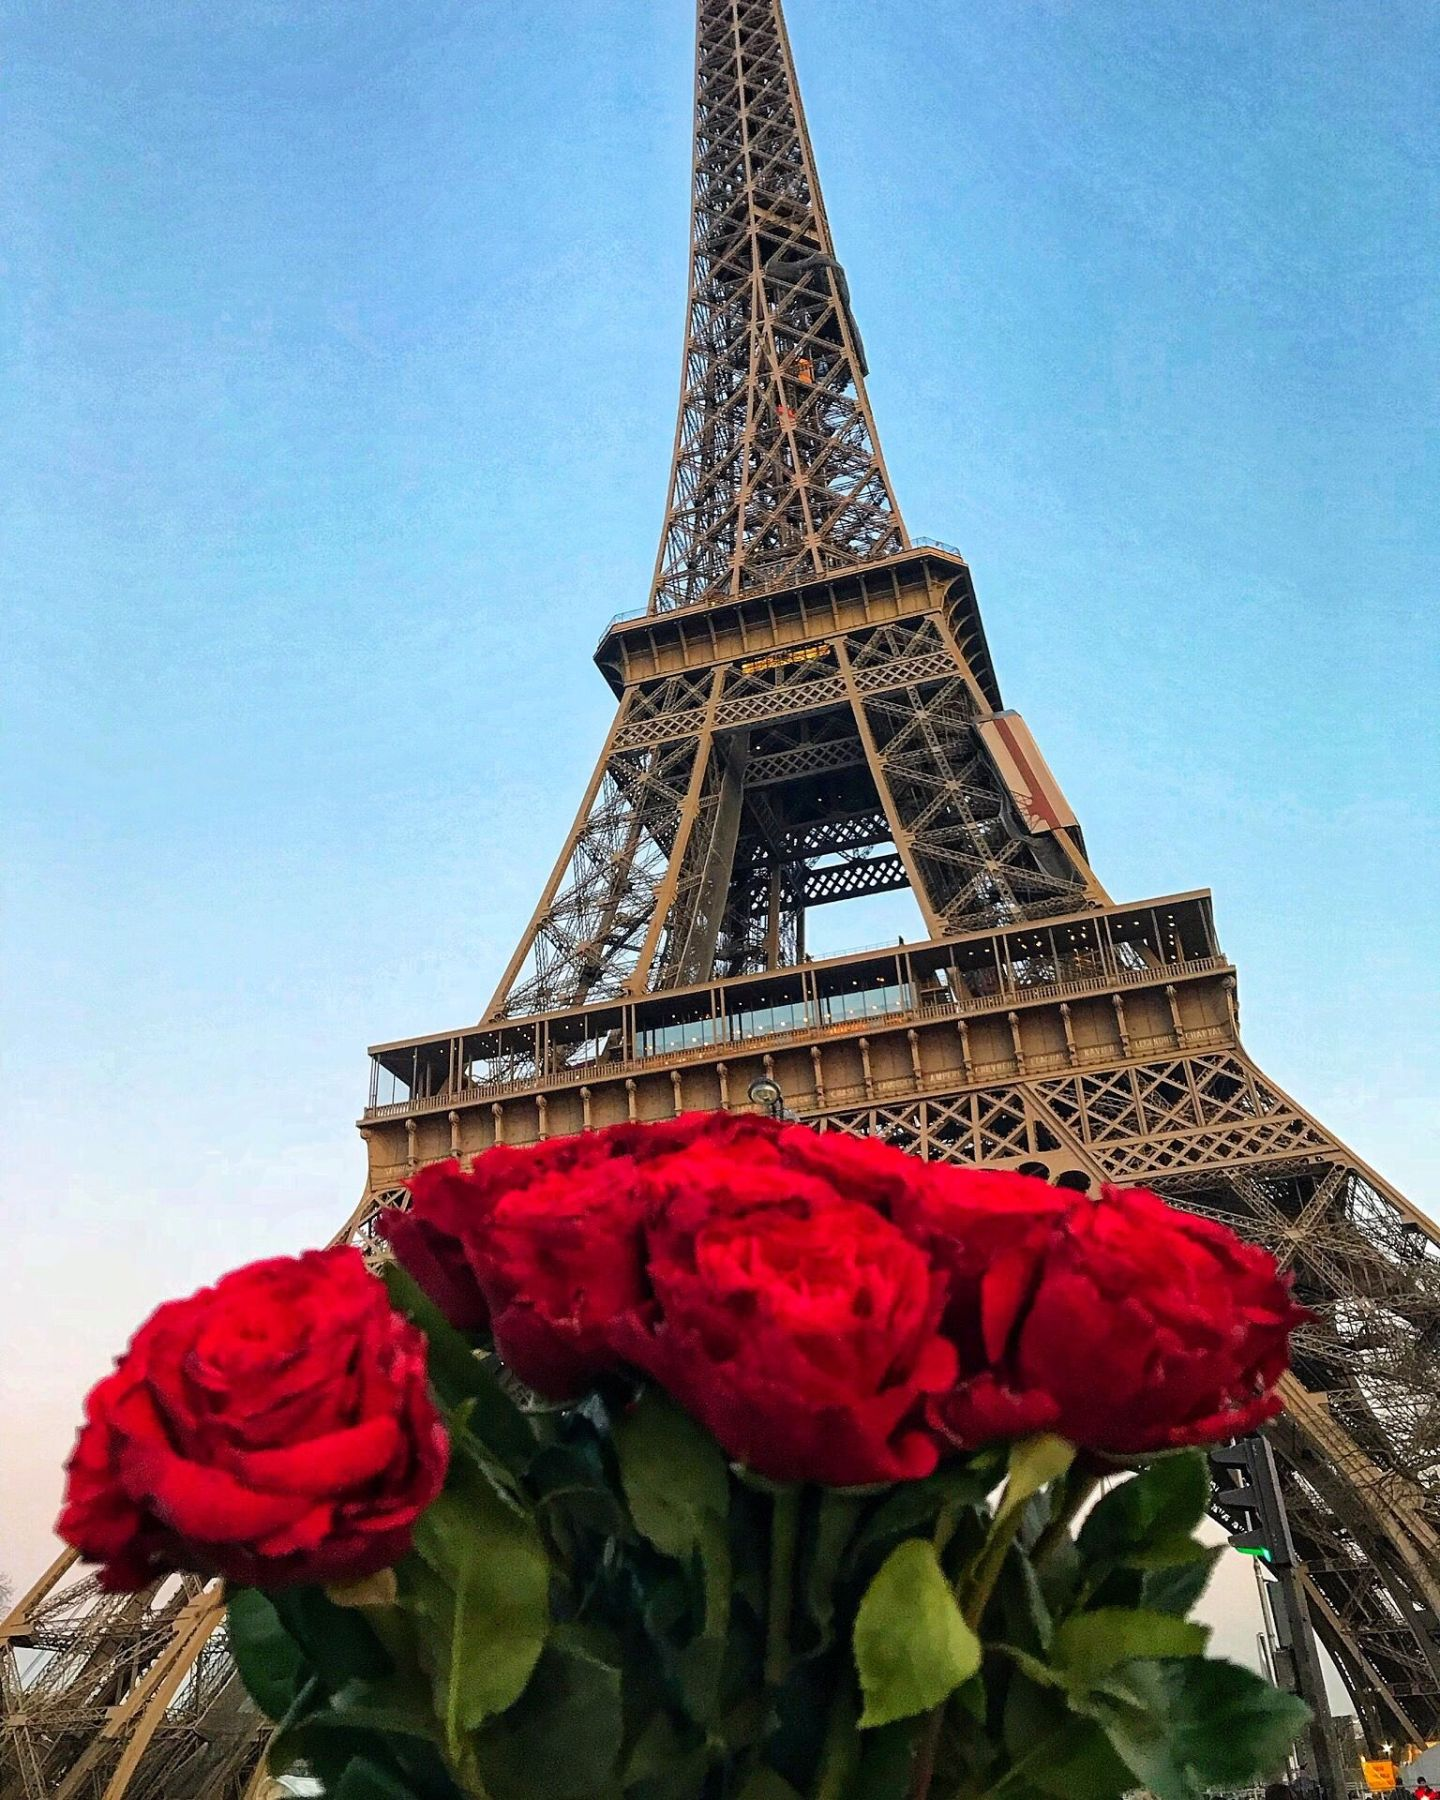 Paris city of love - Red roses under The Eiffel Tower